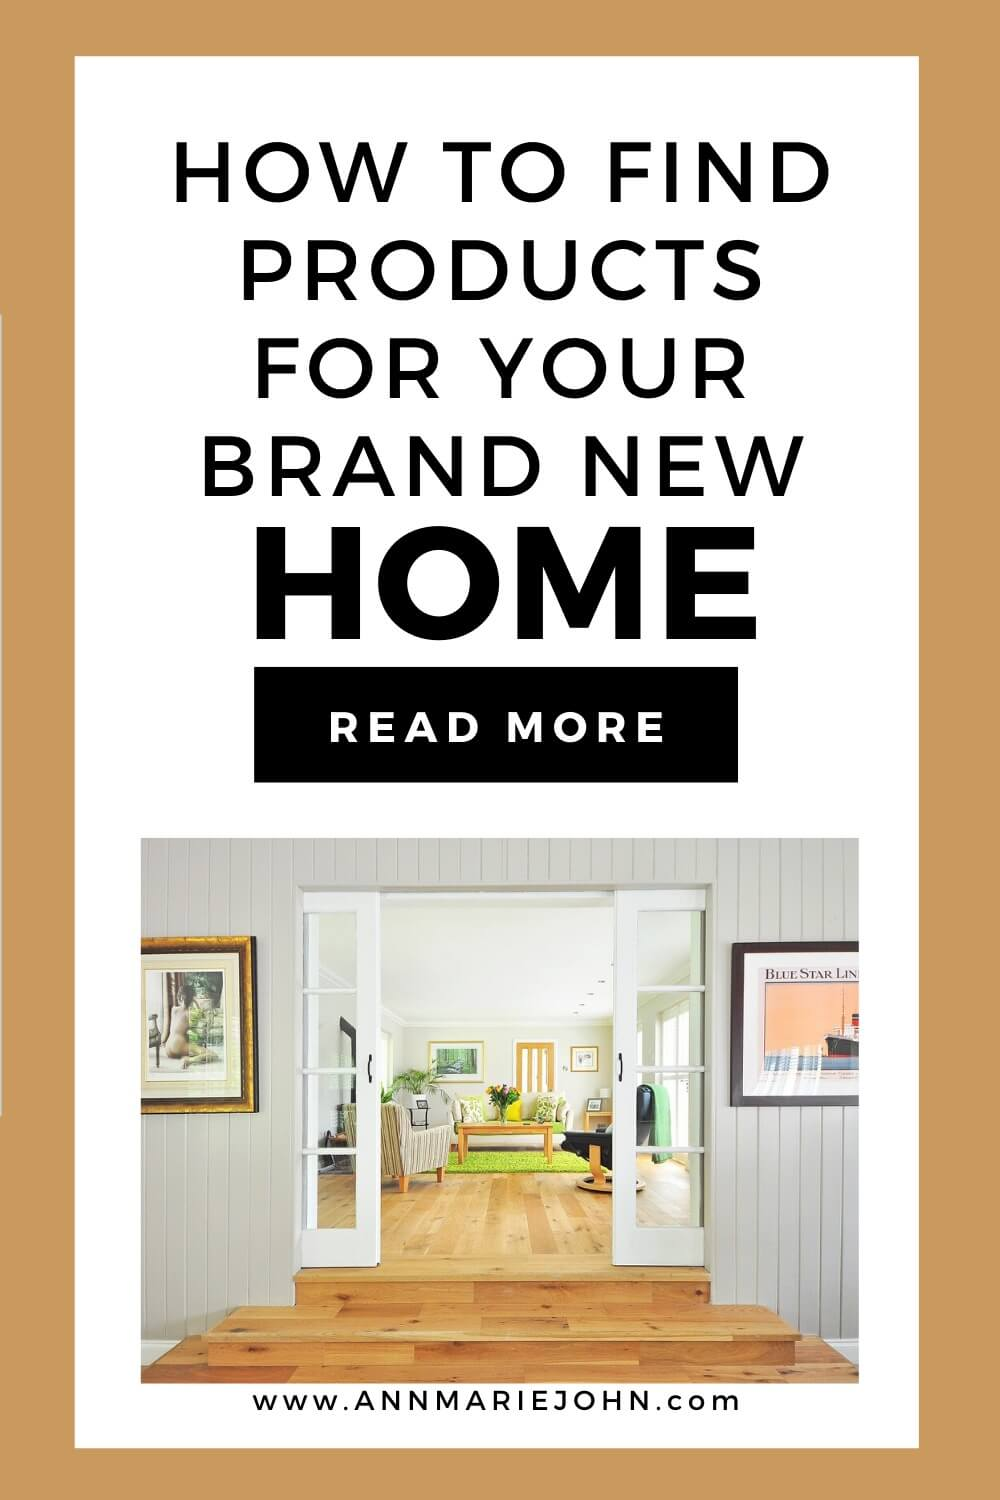 How to find products for your brand new home.